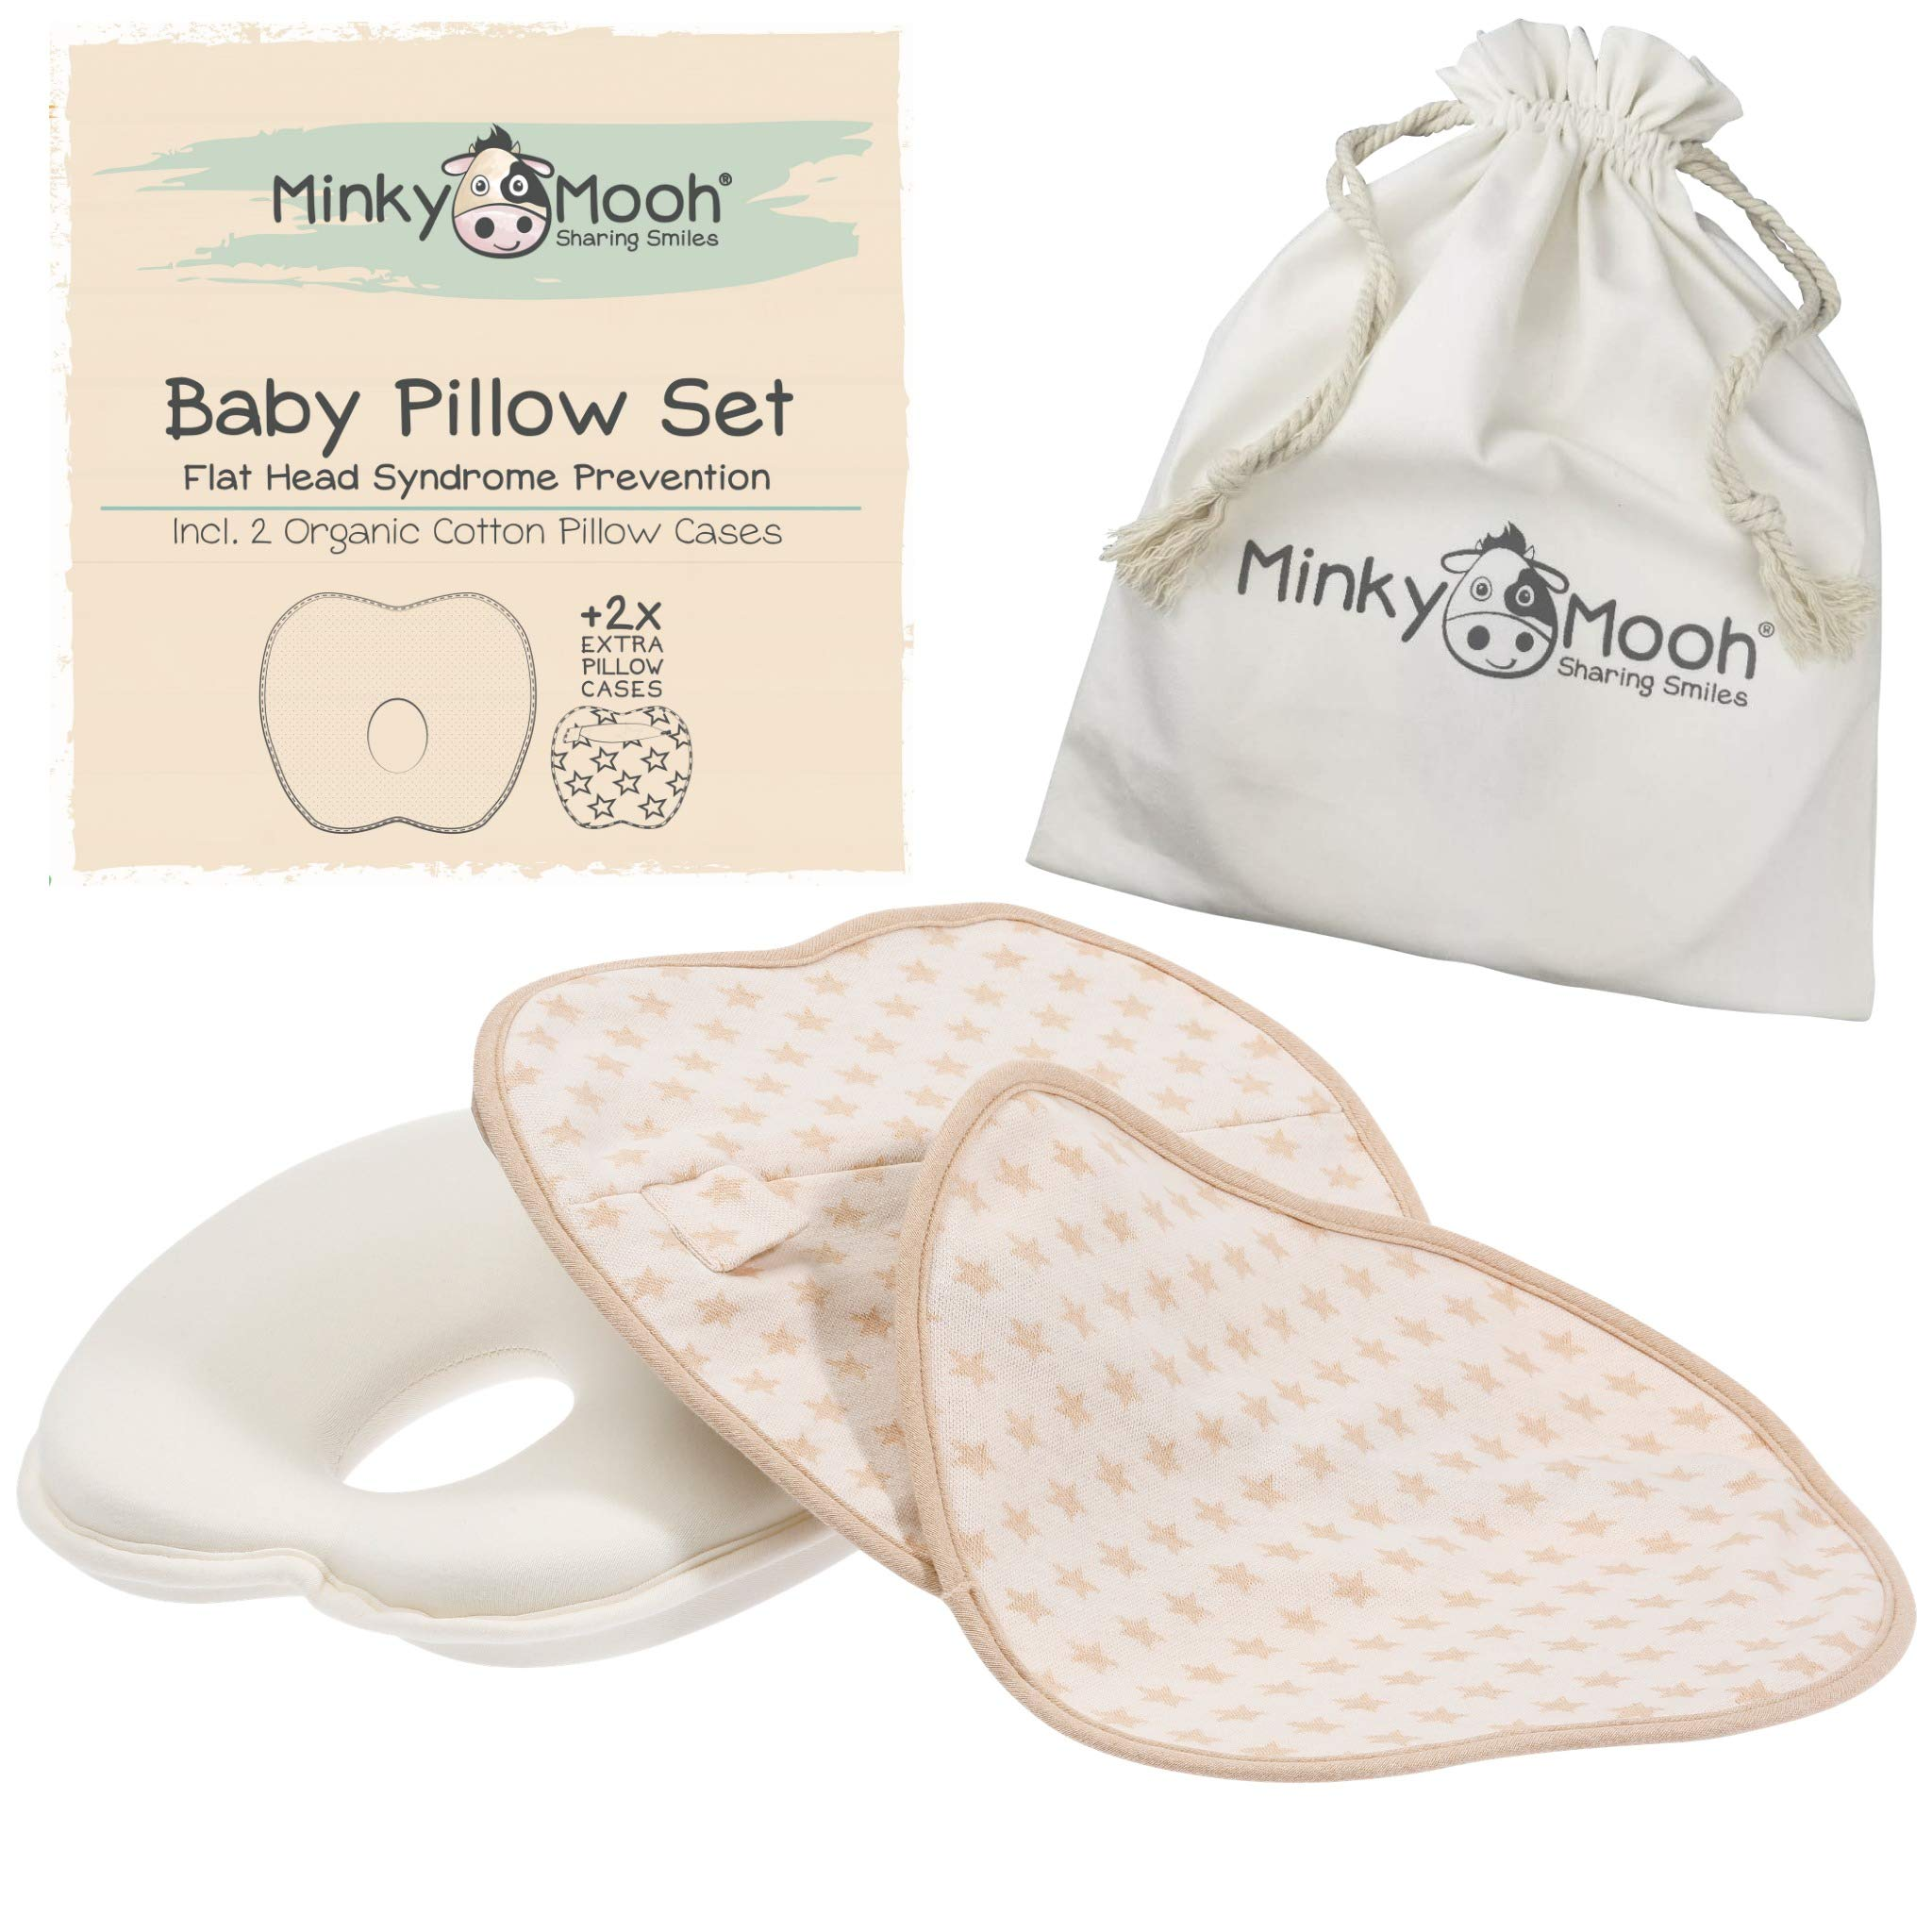 Baby Pillow Set to Prevent Flat Head - 2 Organic Cotton Cases | Reduces Plagiocephaly + Supports Newborn & Infant Natural Head Shaping (Brown Stars, Gift Carton) by Minky Mooh